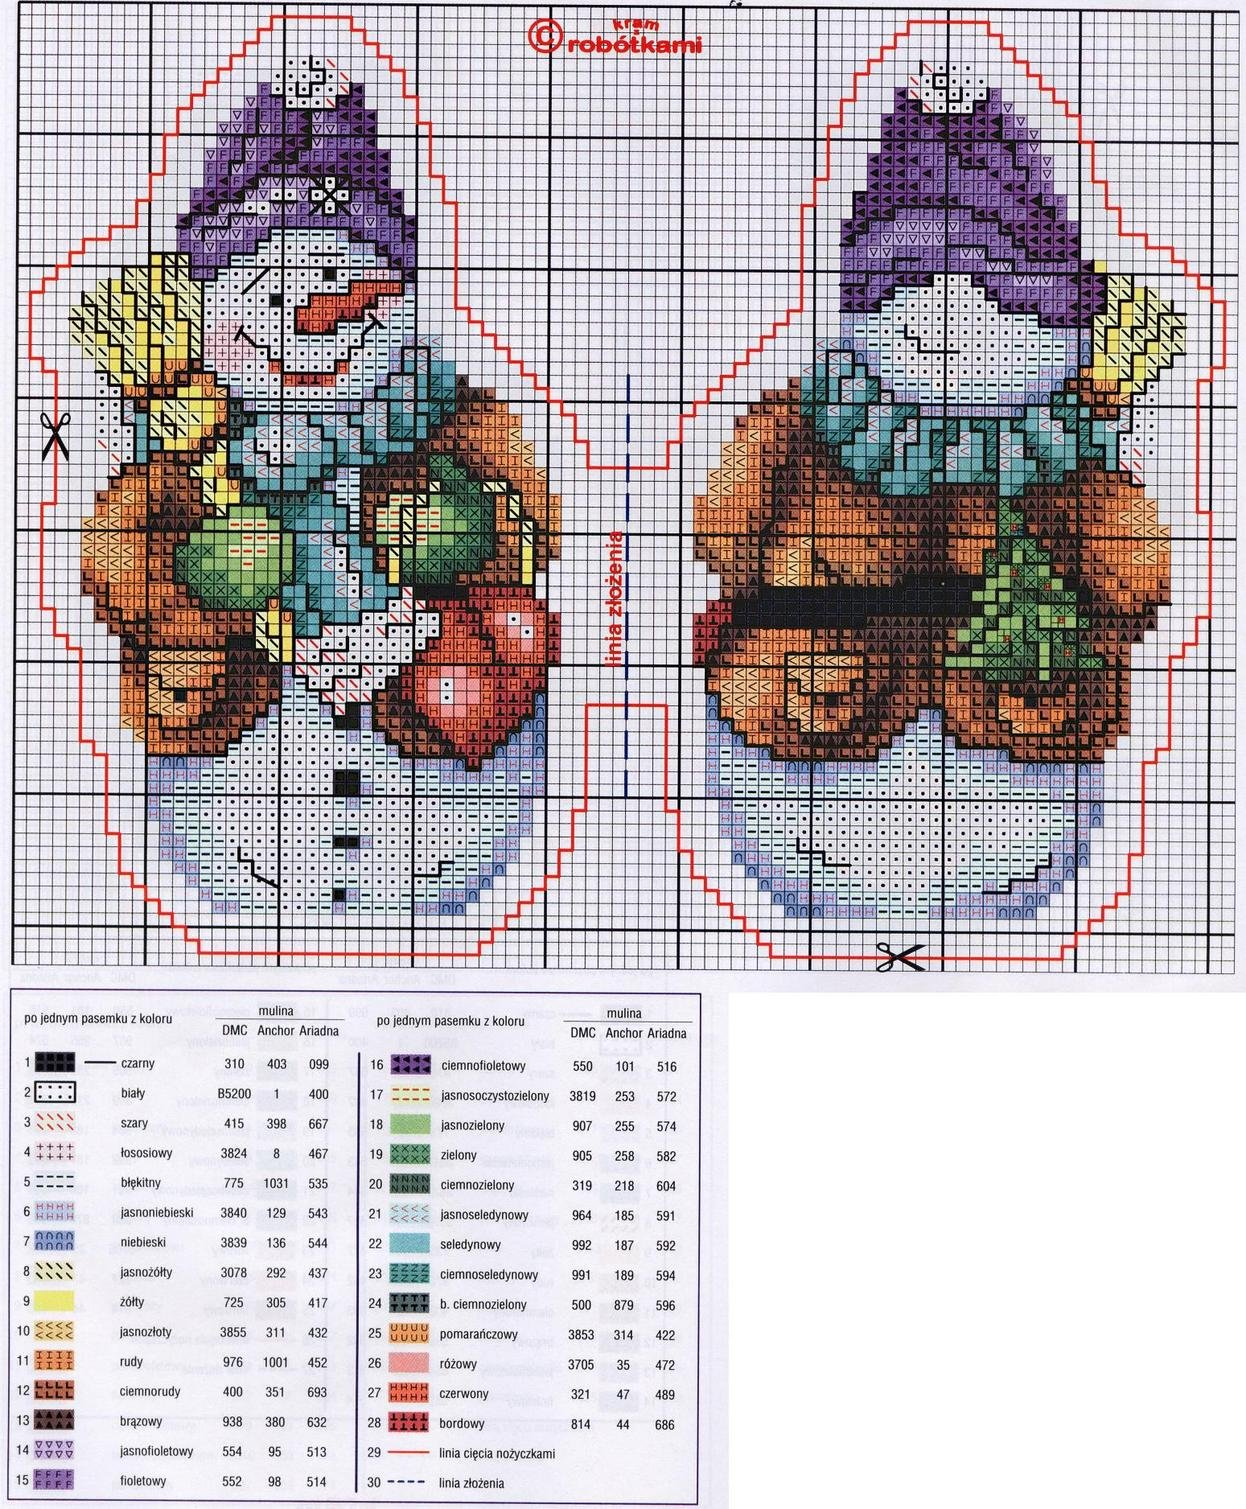 http://make-handmade.com/wp-content/uploads/2011/12/christmas-tree-ornament-crafts-snowman-cross-stitch-kits-make-handmade-3330aaa3cc6fd.jpg